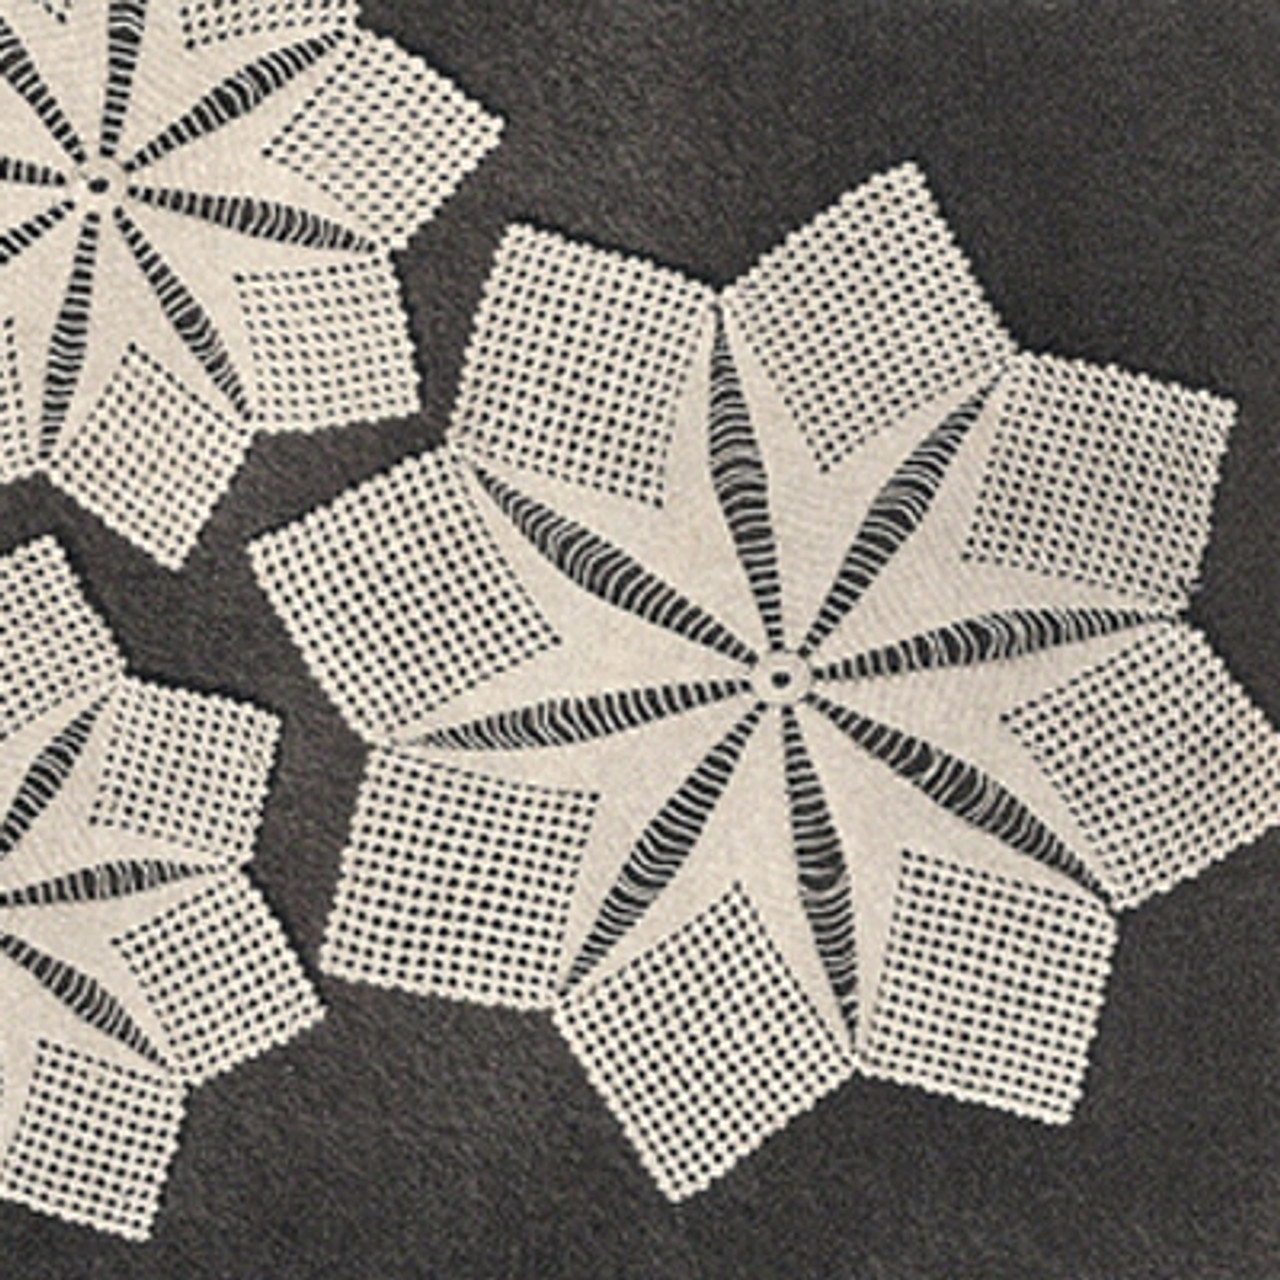 Vintage Crocheted Star Doilies Pattern